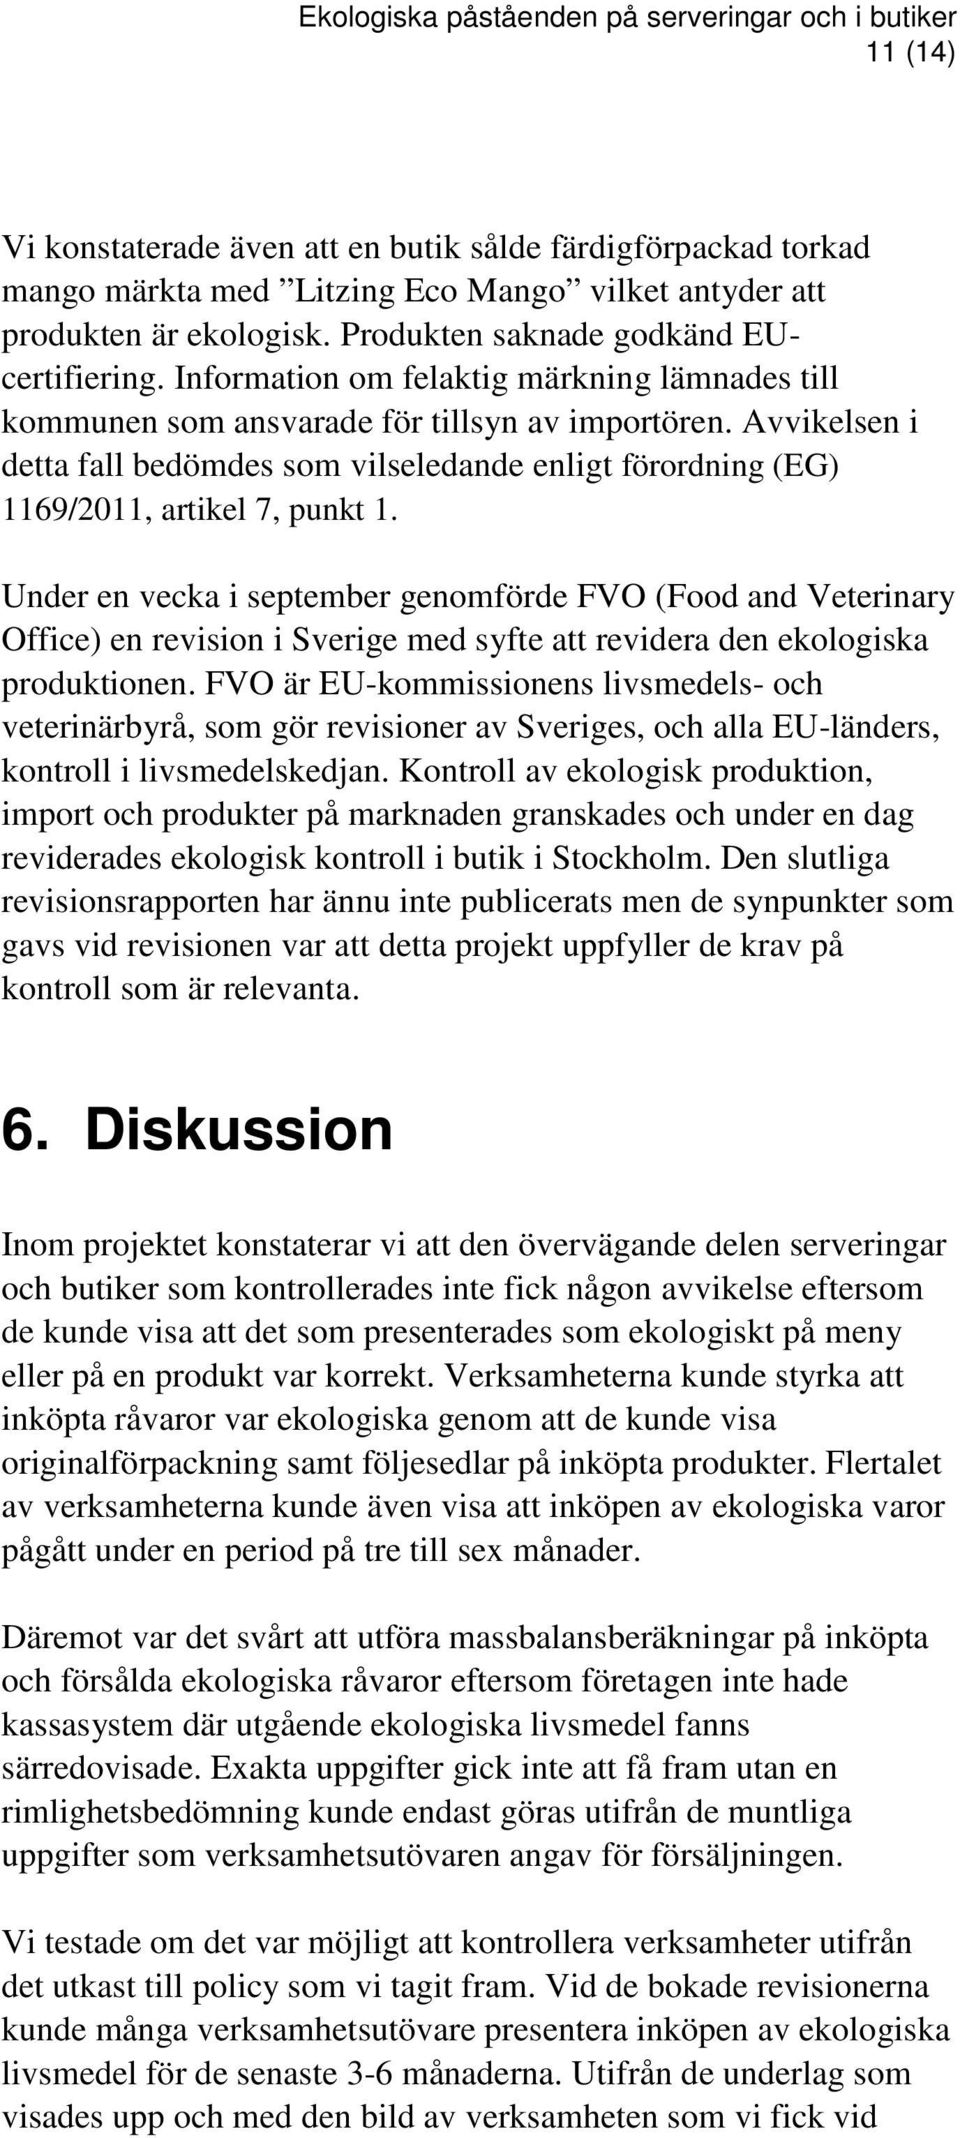 Under en vecka i september genomförde FVO (Food and Veterinary Office) en revision i Sverige med syfte att revidera den ekologiska produktionen.